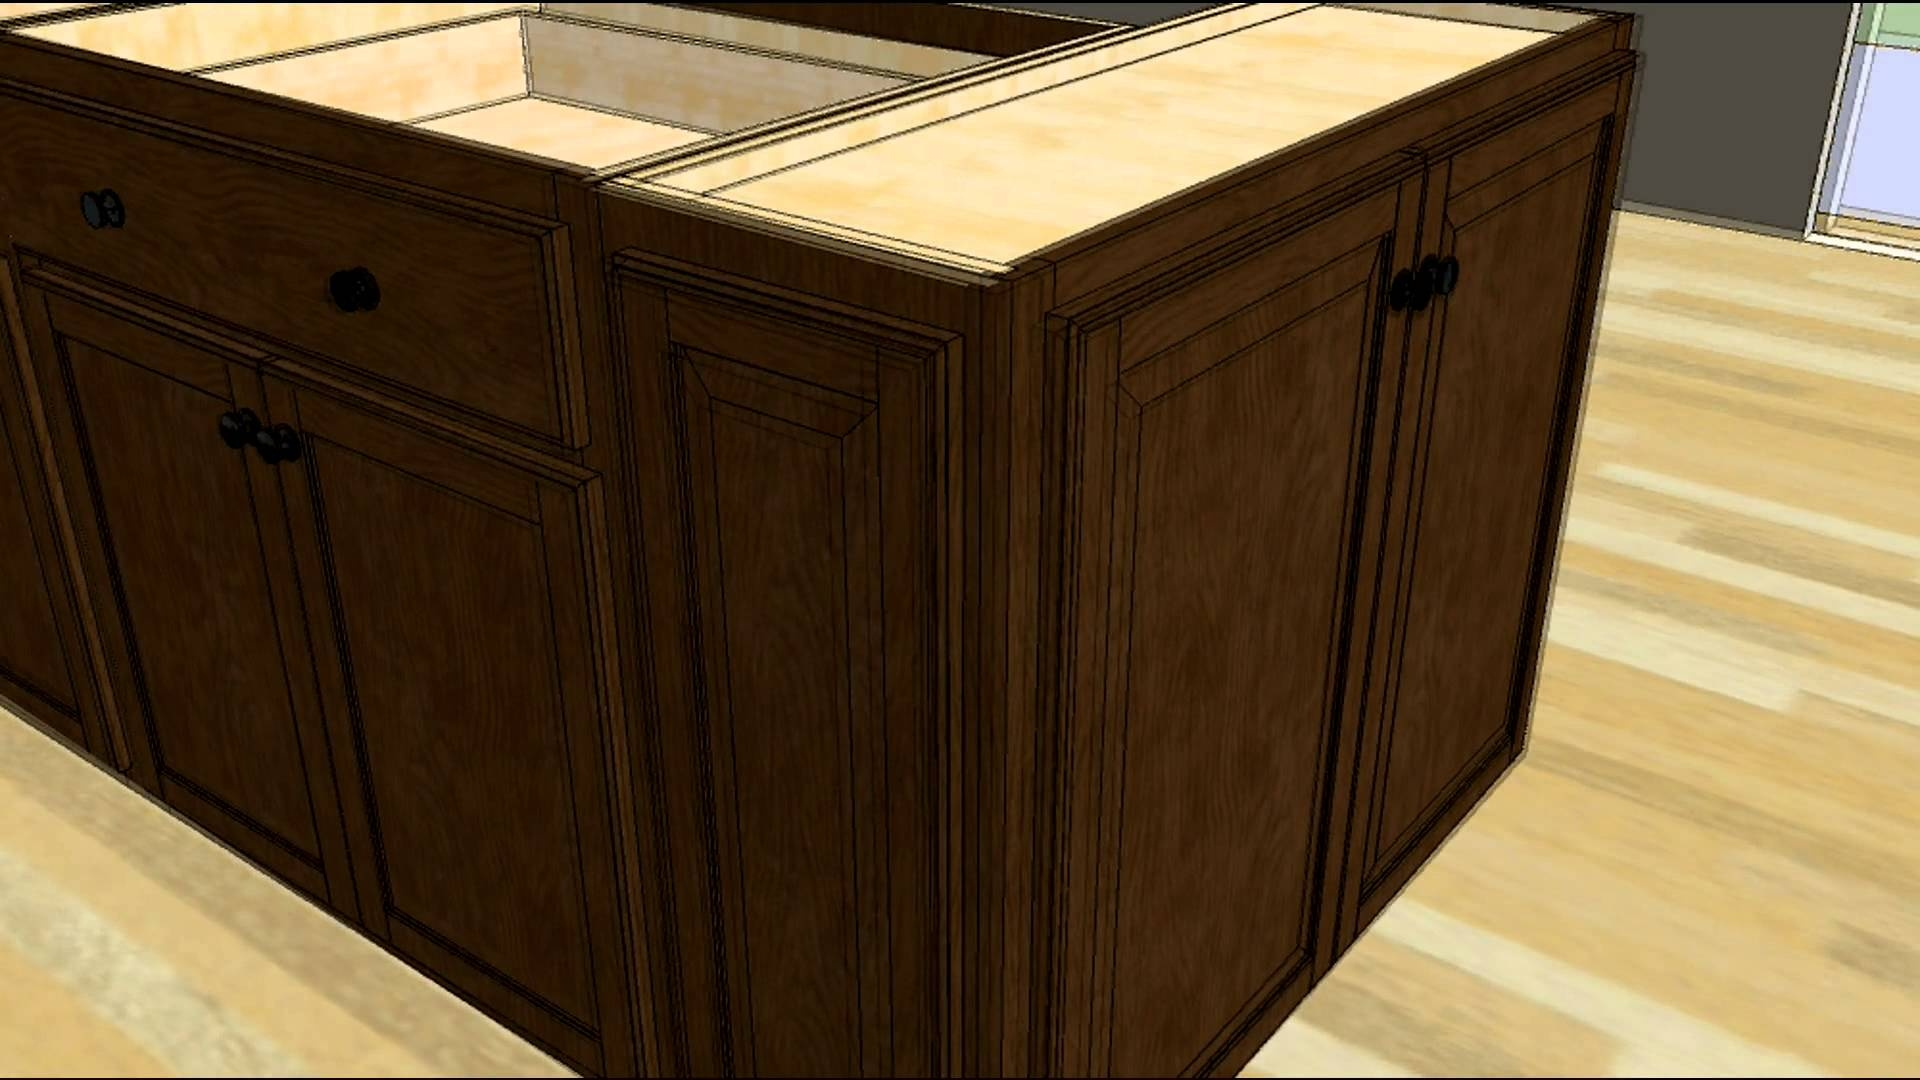 Permalink to Make Kitchen Island From Base Cabinets